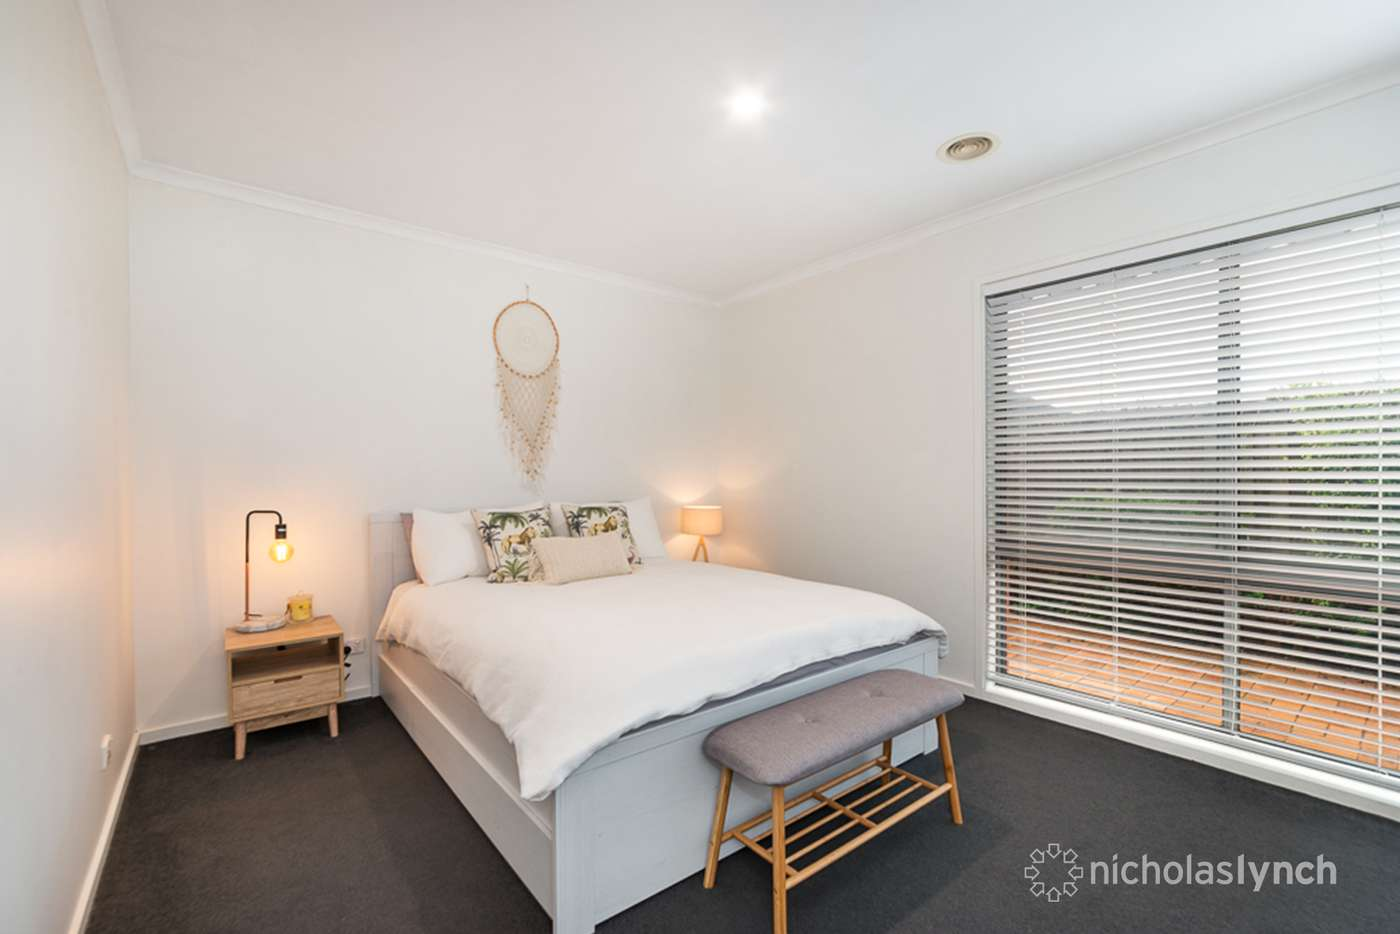 Fifth view of Homely unit listing, 4/21 Van Ness Avenue, Mornington VIC 3931